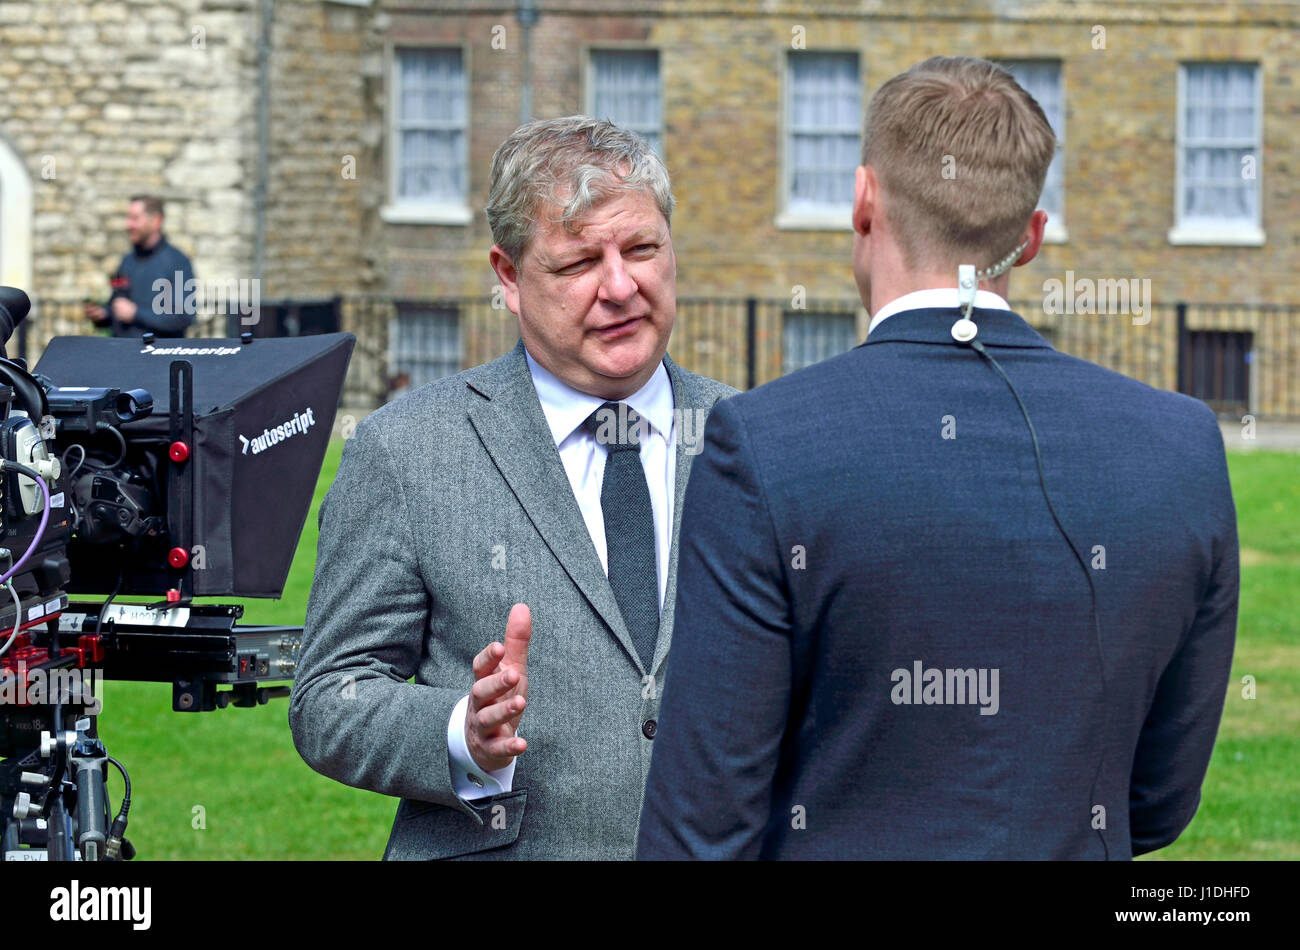 Angus Robertson MP (SNP: Moray) being interviewed on College Green, Westminster 18th April 2017 shortly after a - Stock Image